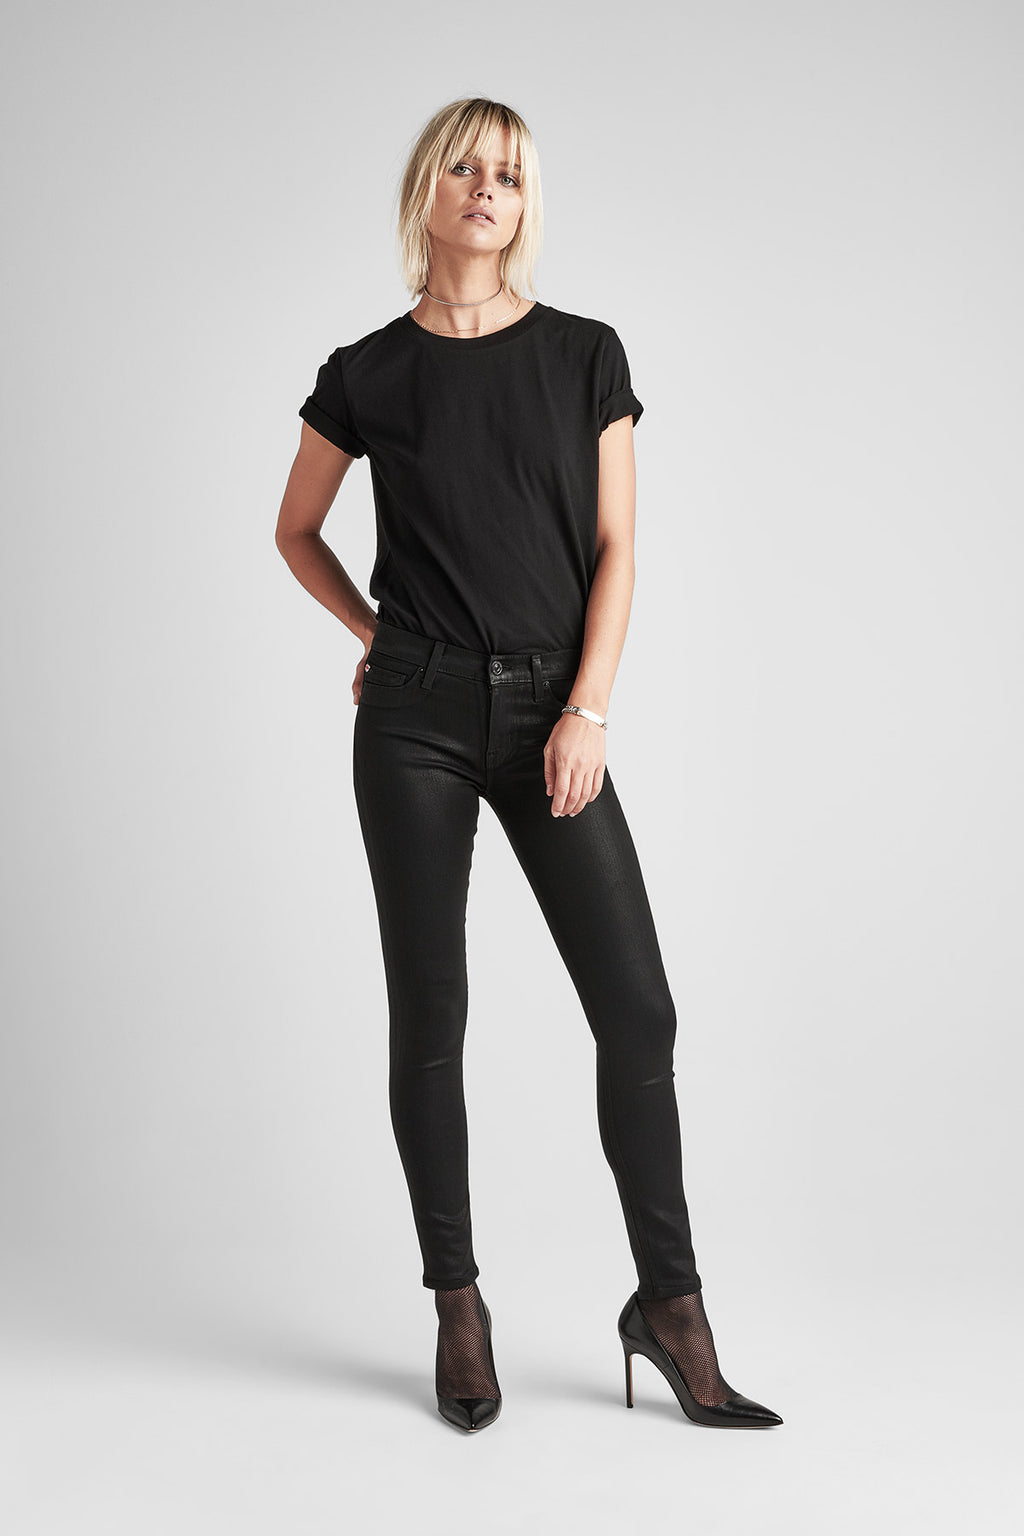 NICO MIDRISE SUPER SKINNY COATED DENIM ANKLE JEAN - NOIR COATED - Image 1